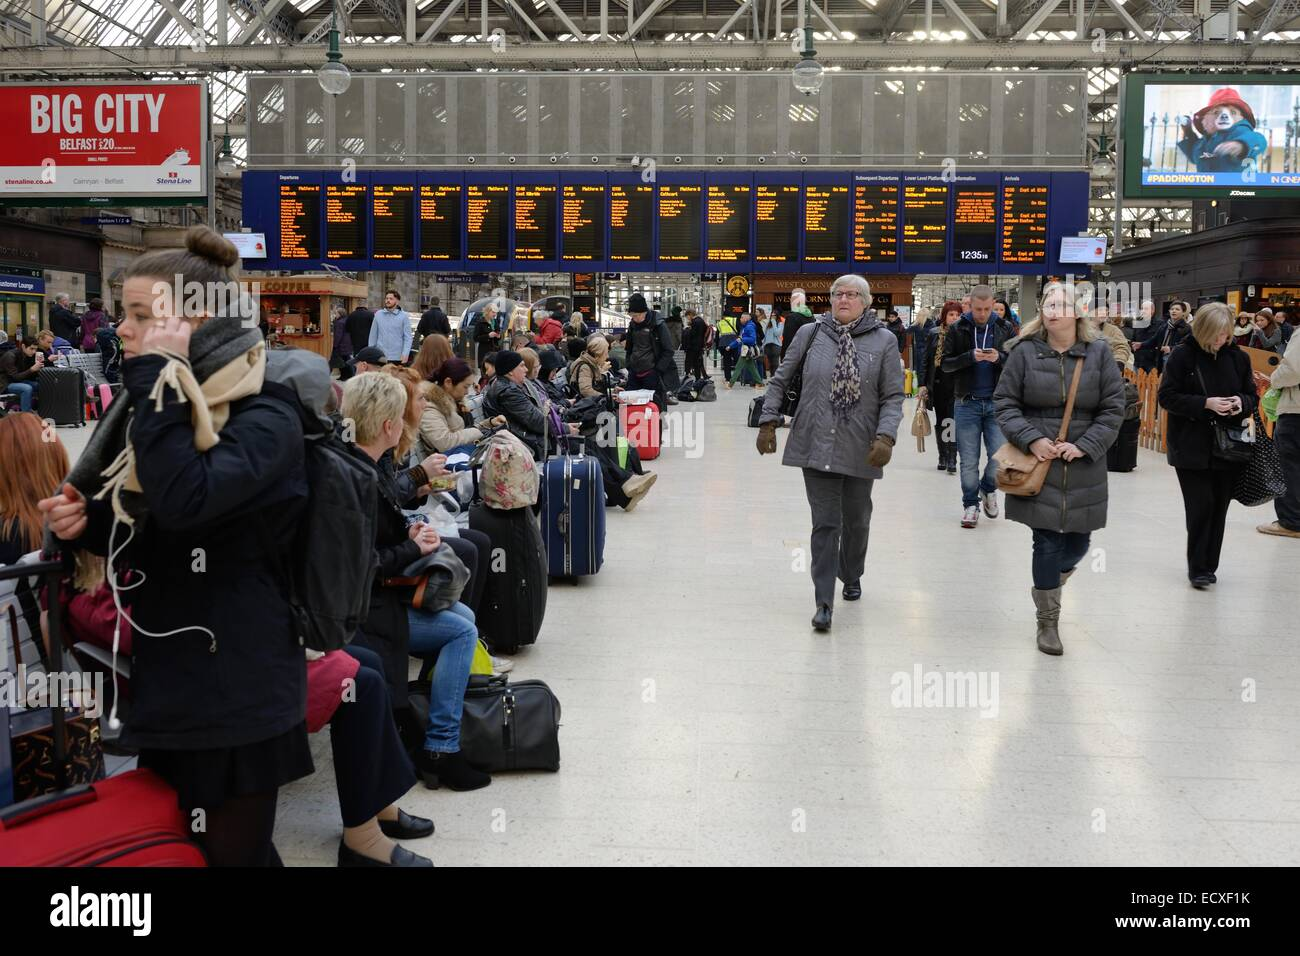 People waiting on trains at Glasgow's Central Station. - Stock Image